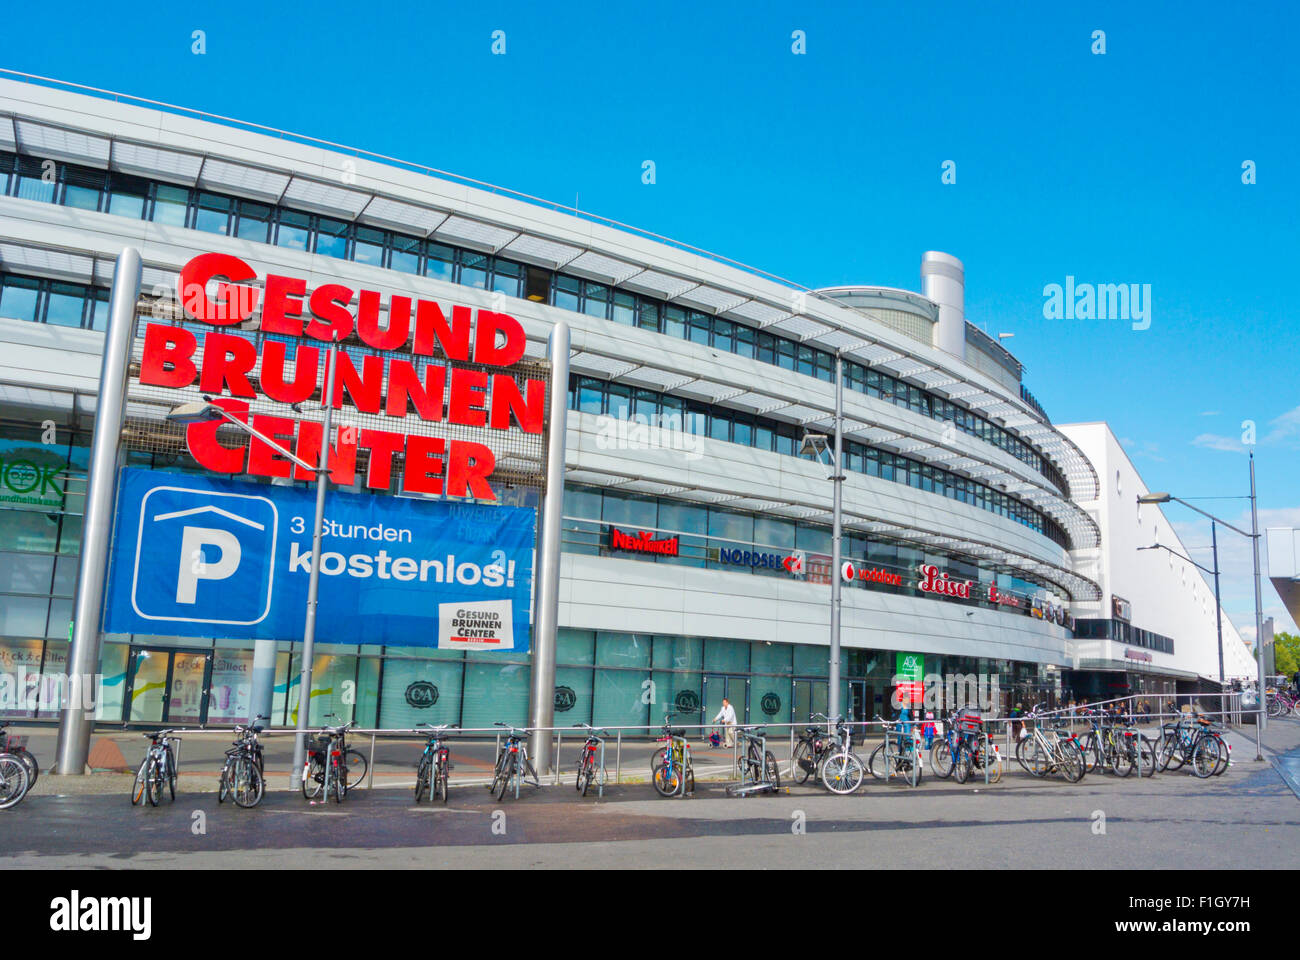 berlin shopping center stock photos berlin shopping center stock images alamy. Black Bedroom Furniture Sets. Home Design Ideas